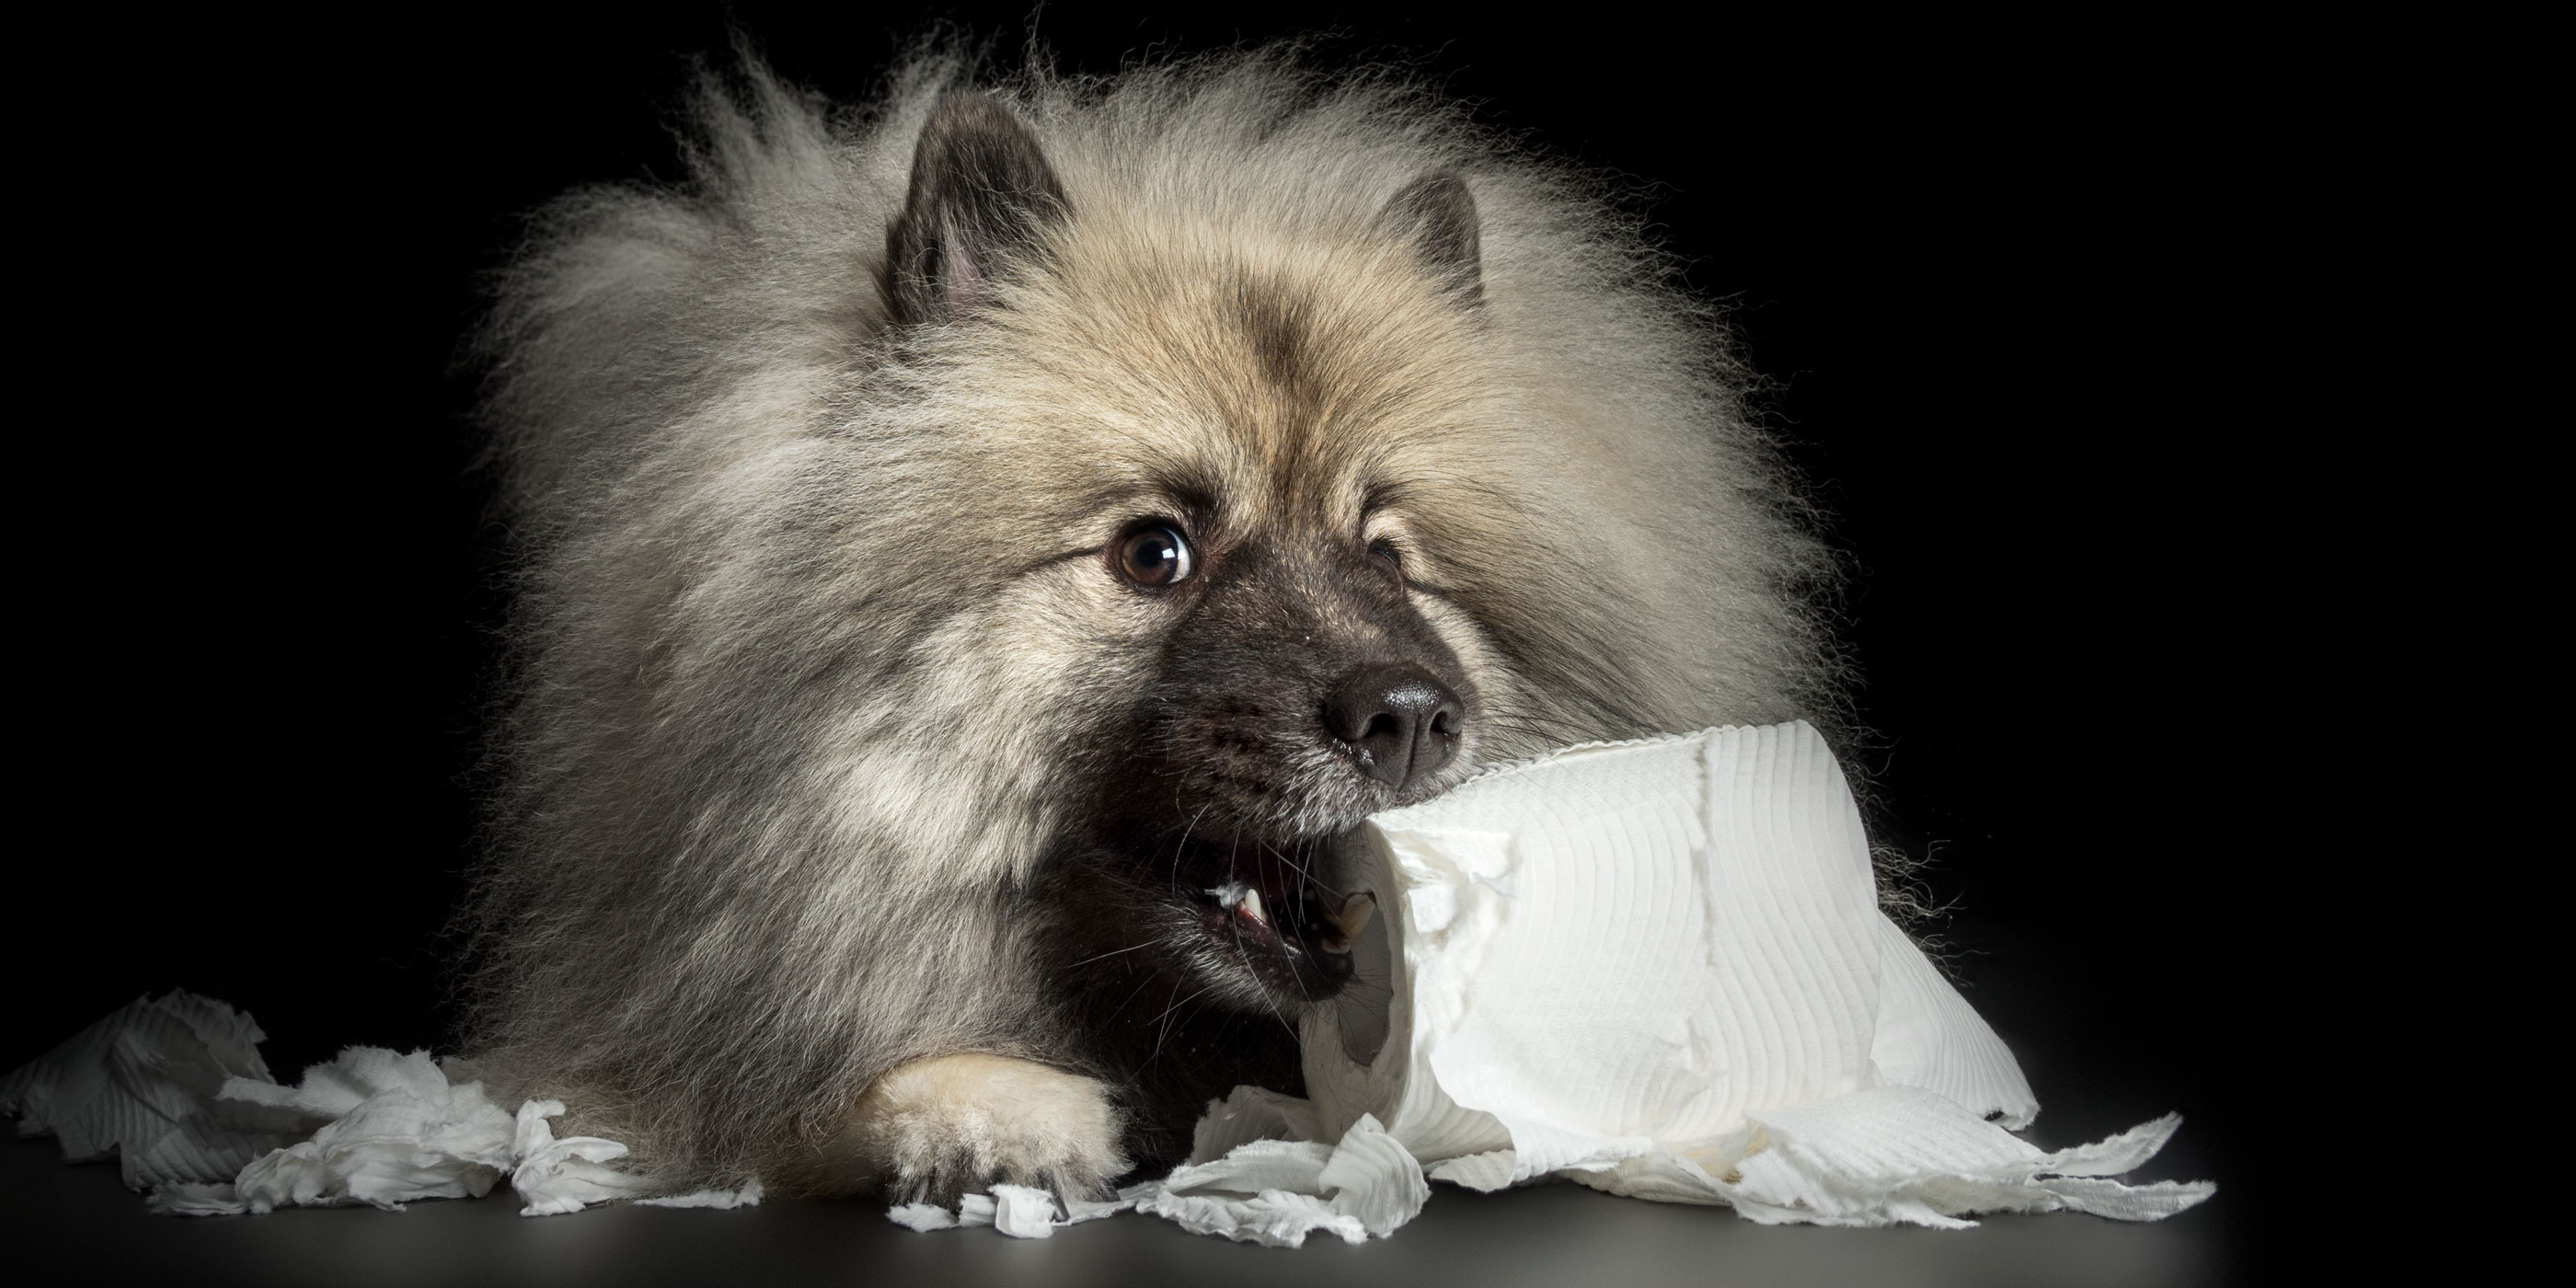 toilet paper chewing keeshond